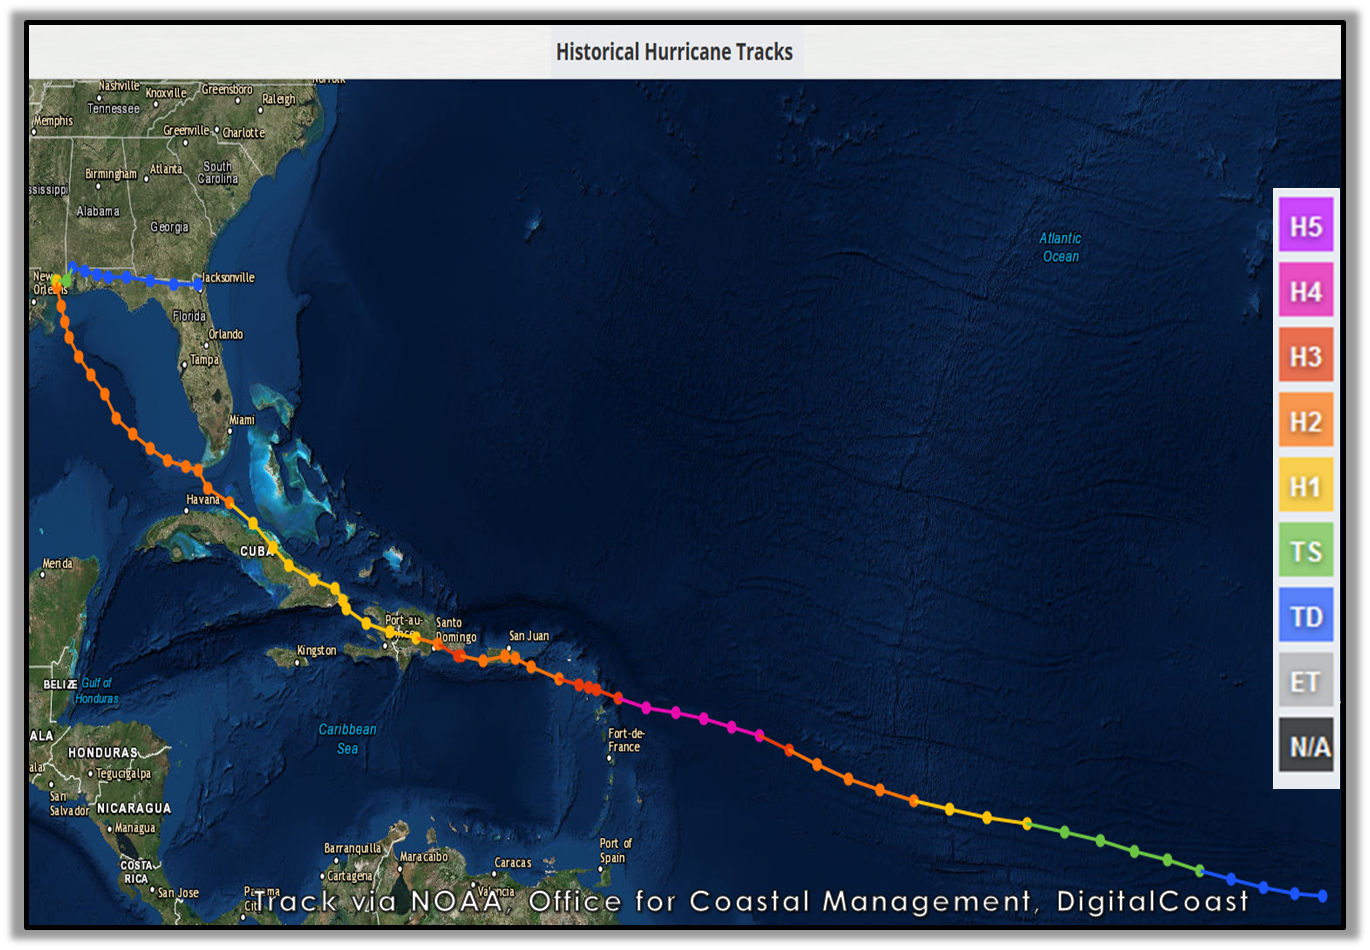 Hurricane Georges - September 1998